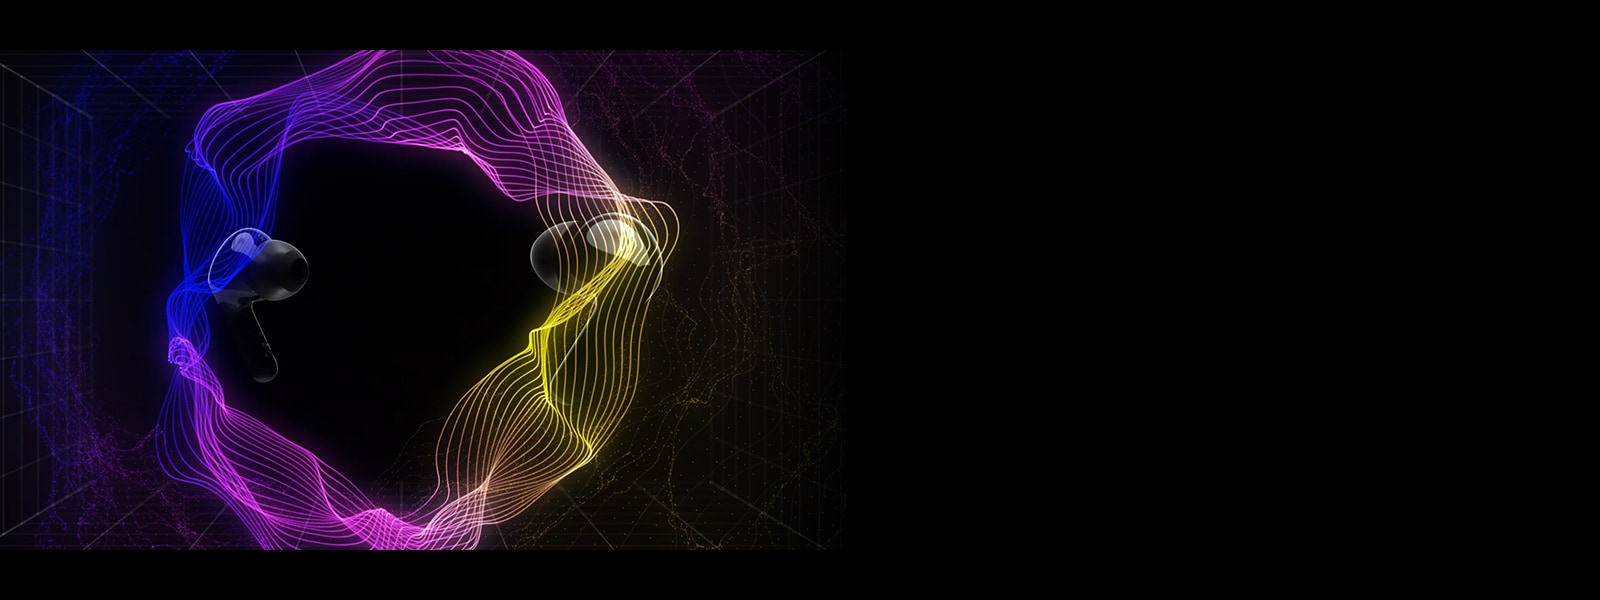 An image of two earbuds floating in a virtual space with colorful lighting surrounding the space.